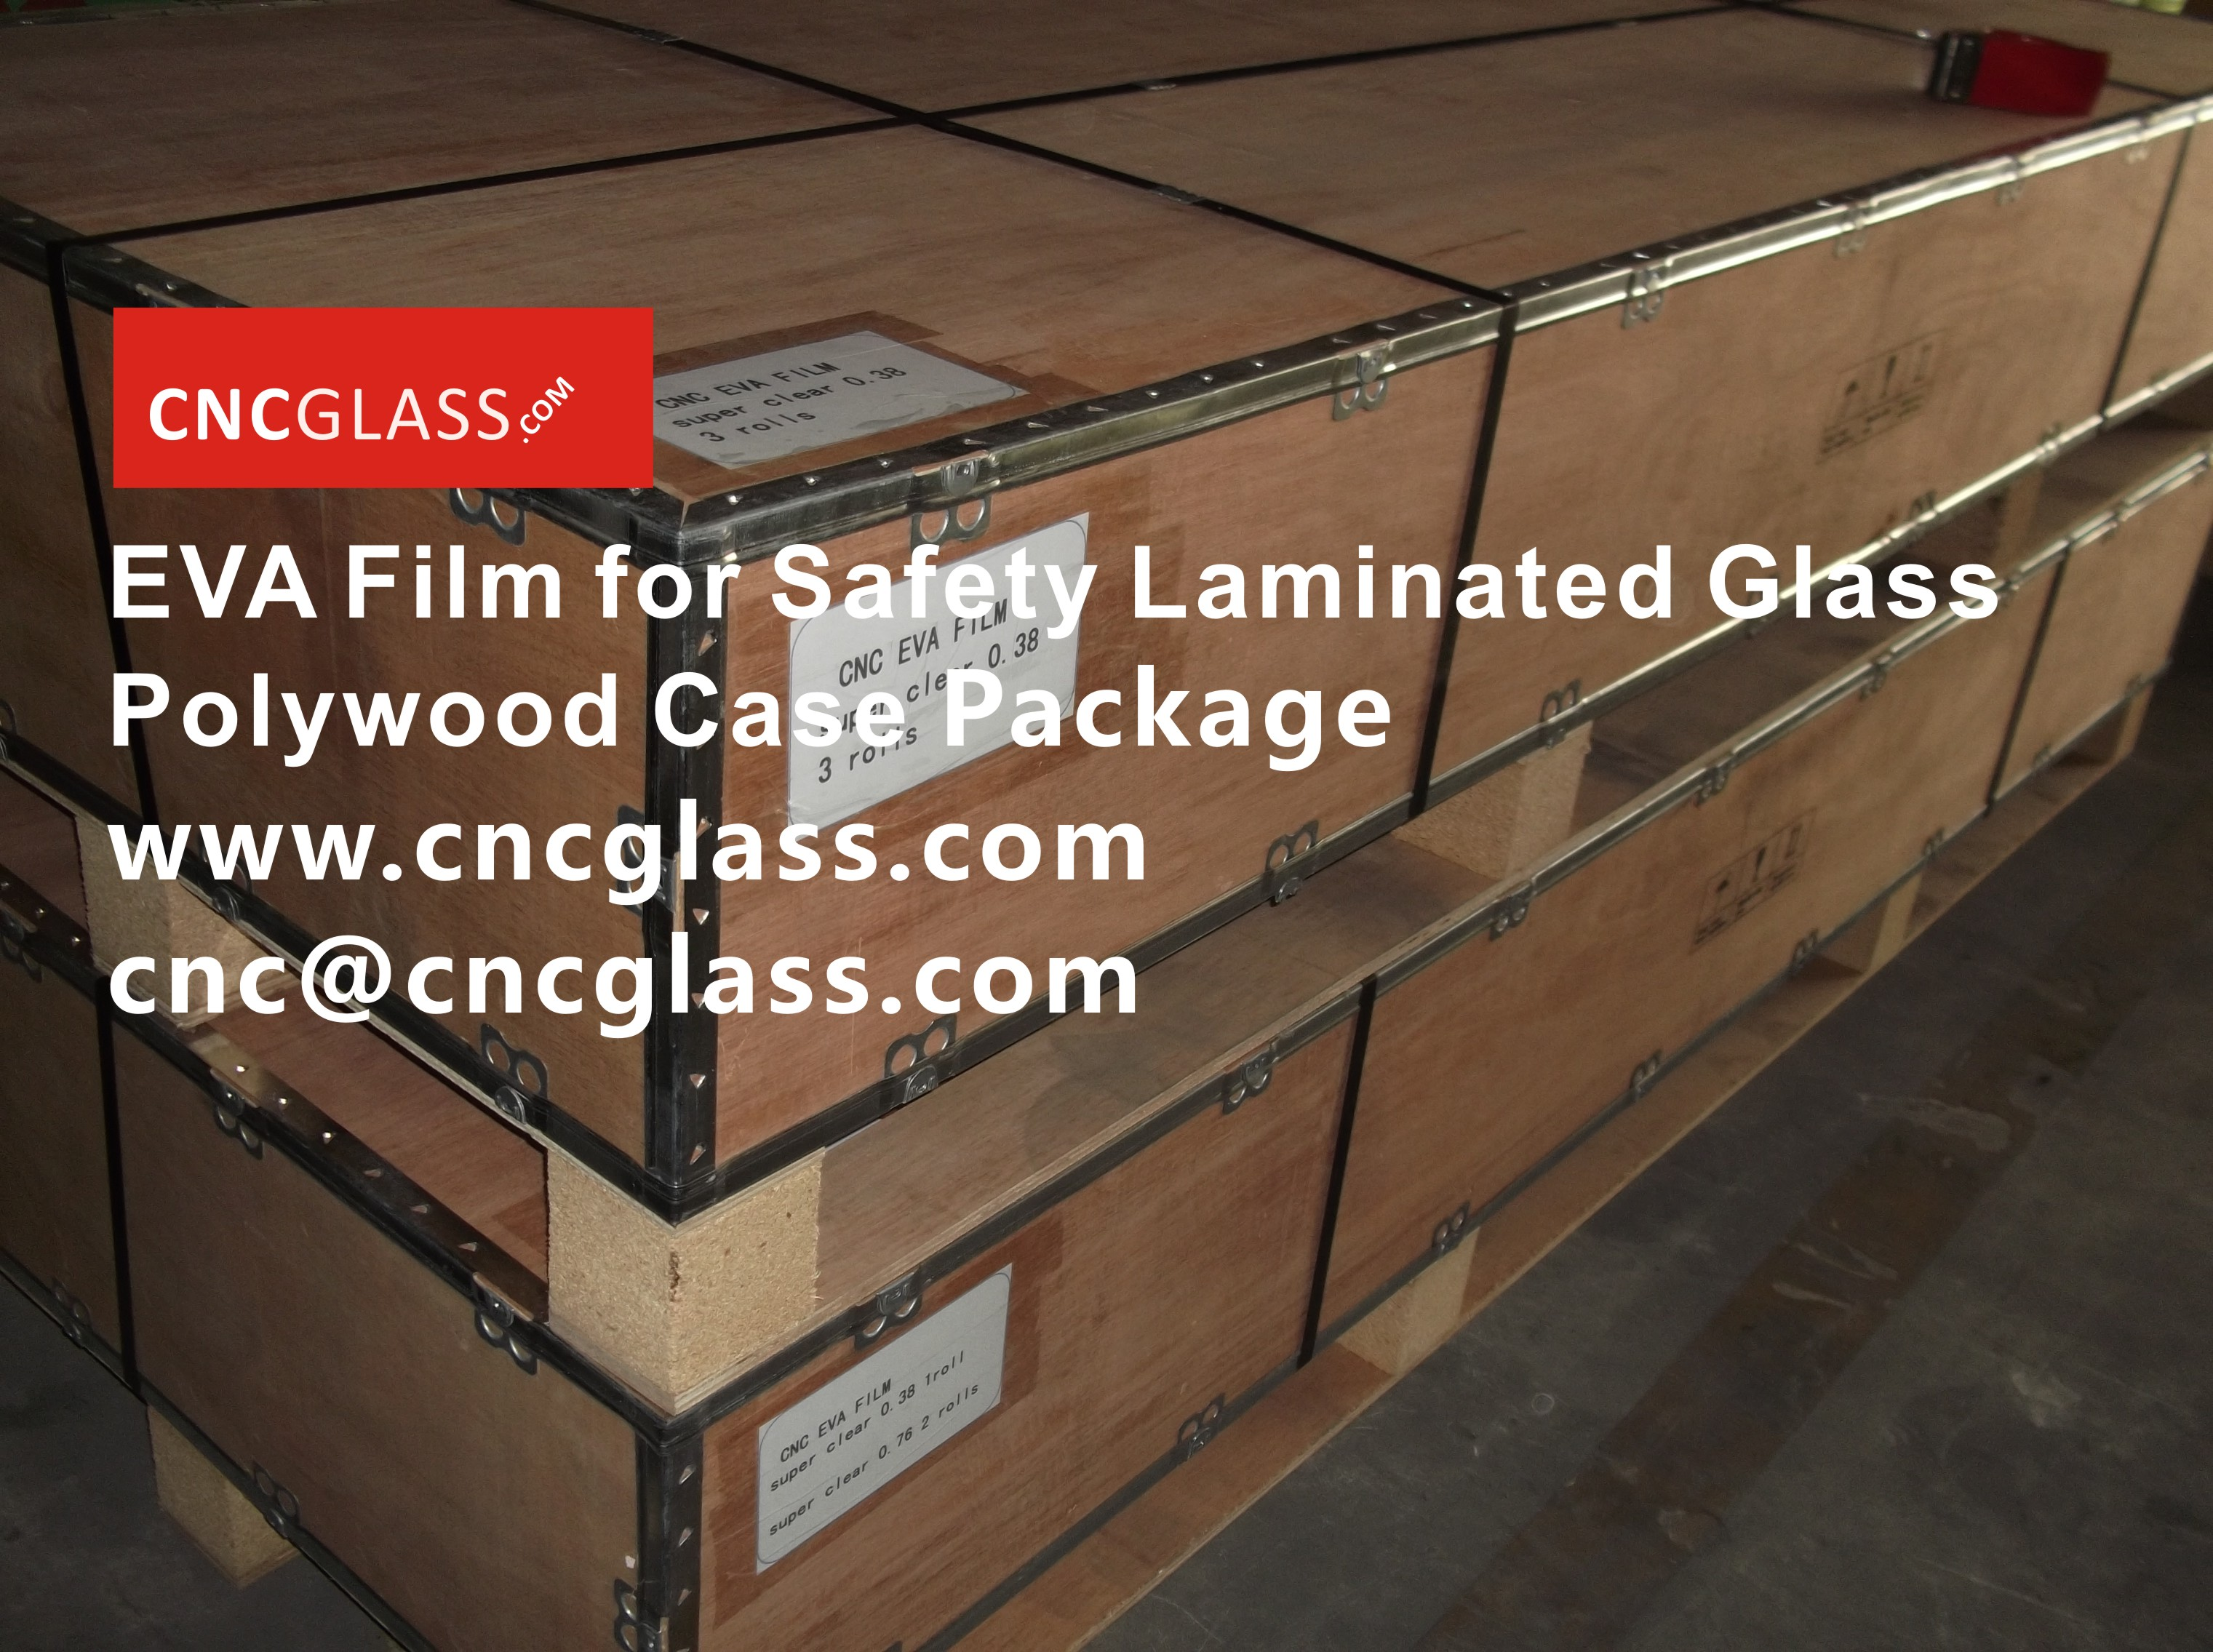 091606EVA Film for Safety Glass Package